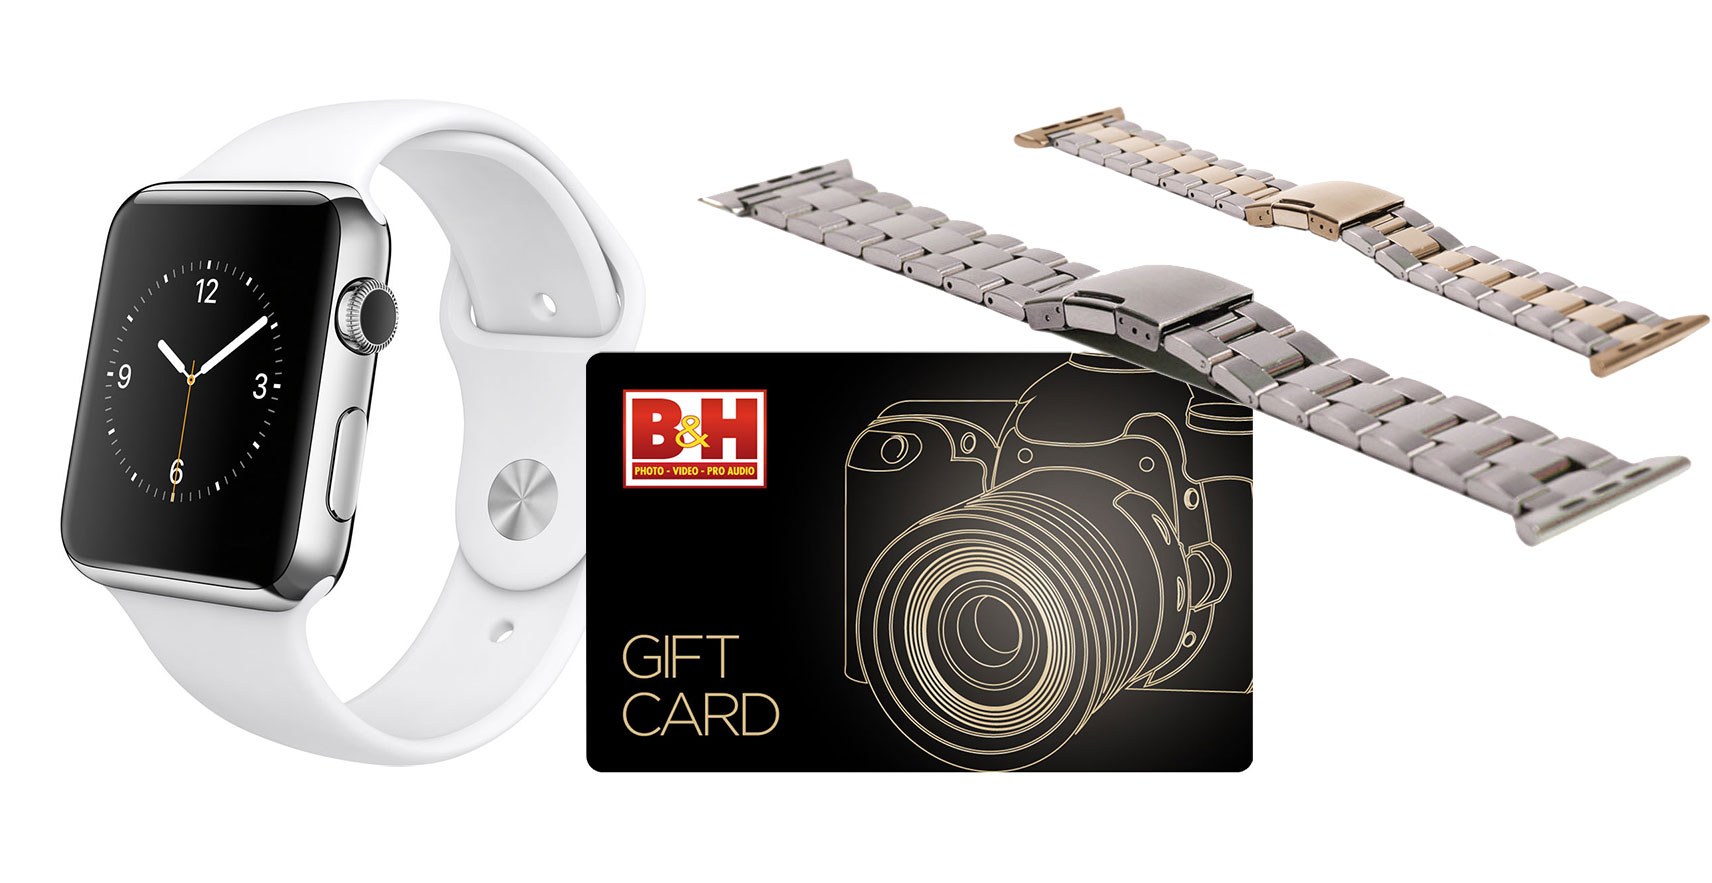 Apple Watch Stainless Steel with $100 B&H Gift Card